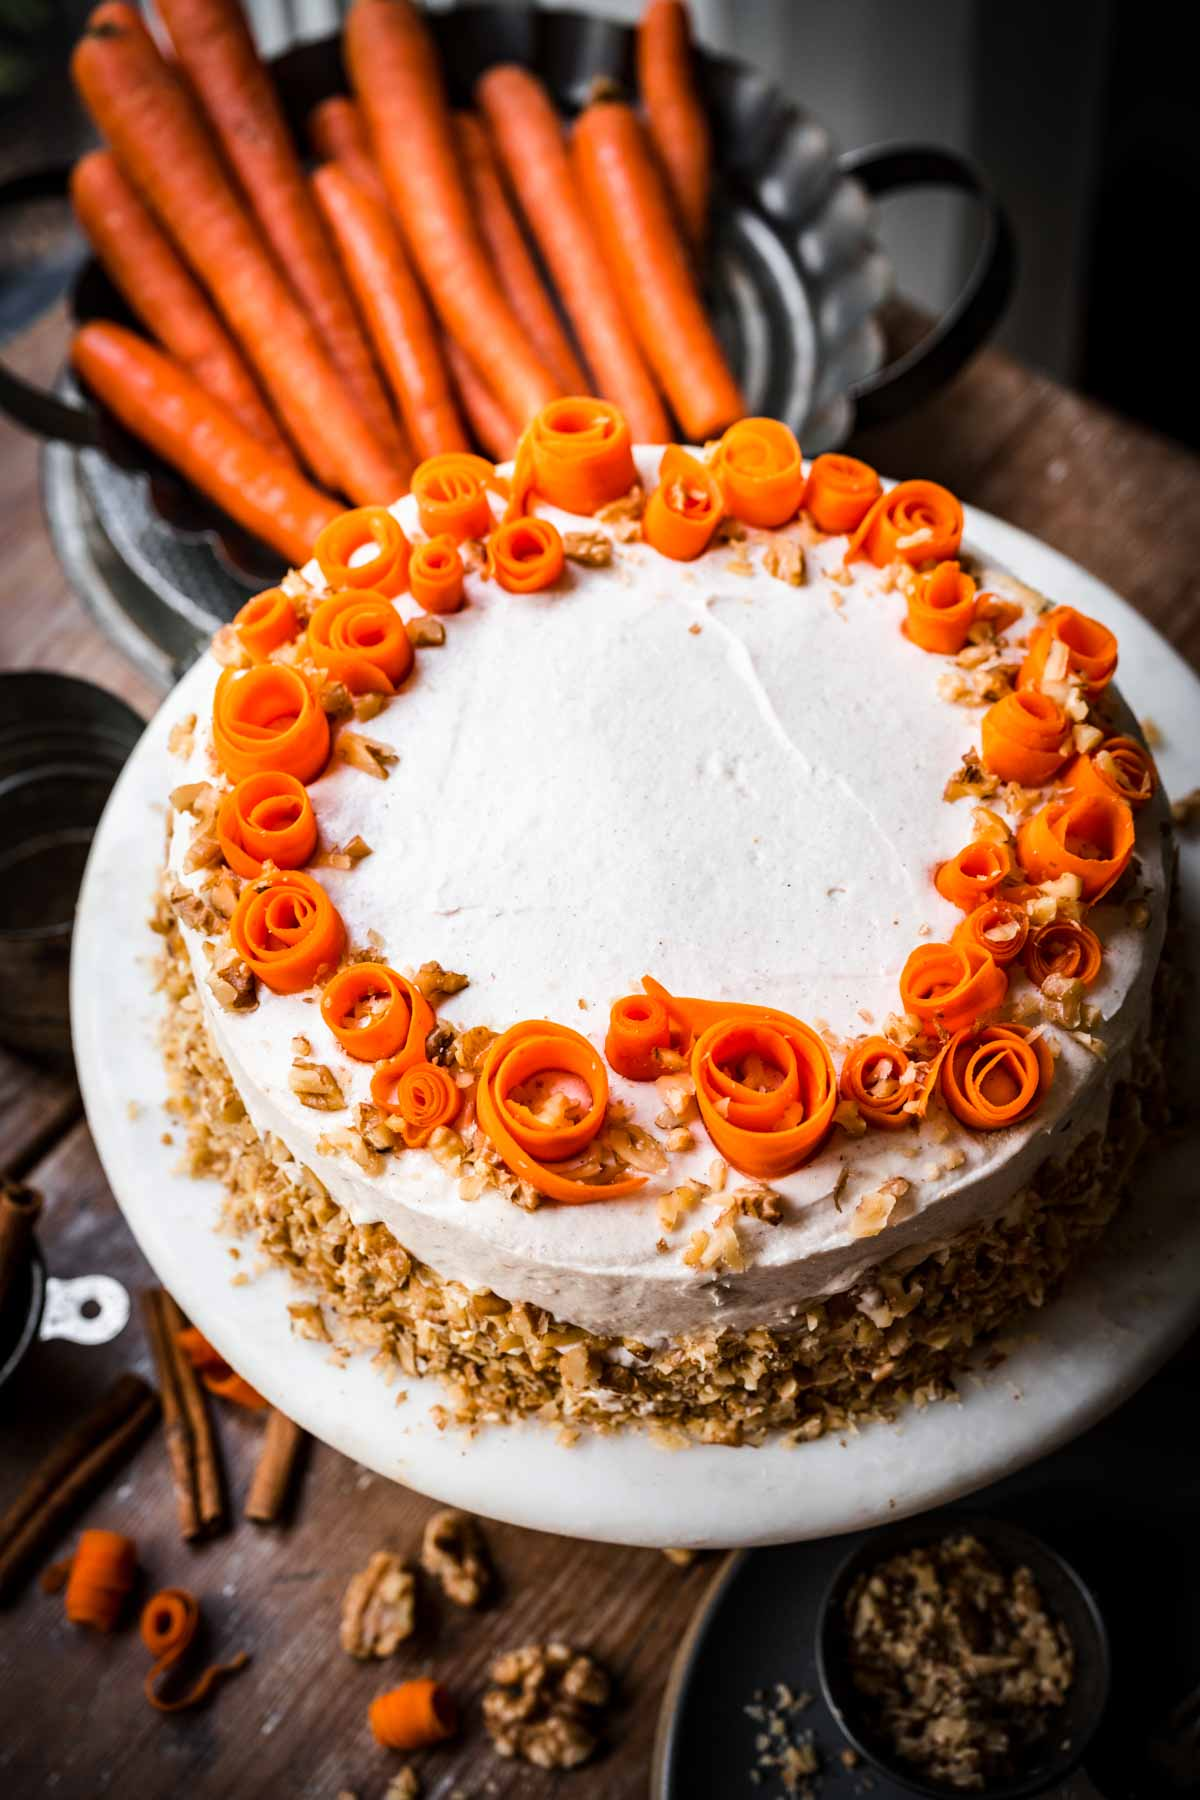 side view of vegan carrot cake on cake stand.